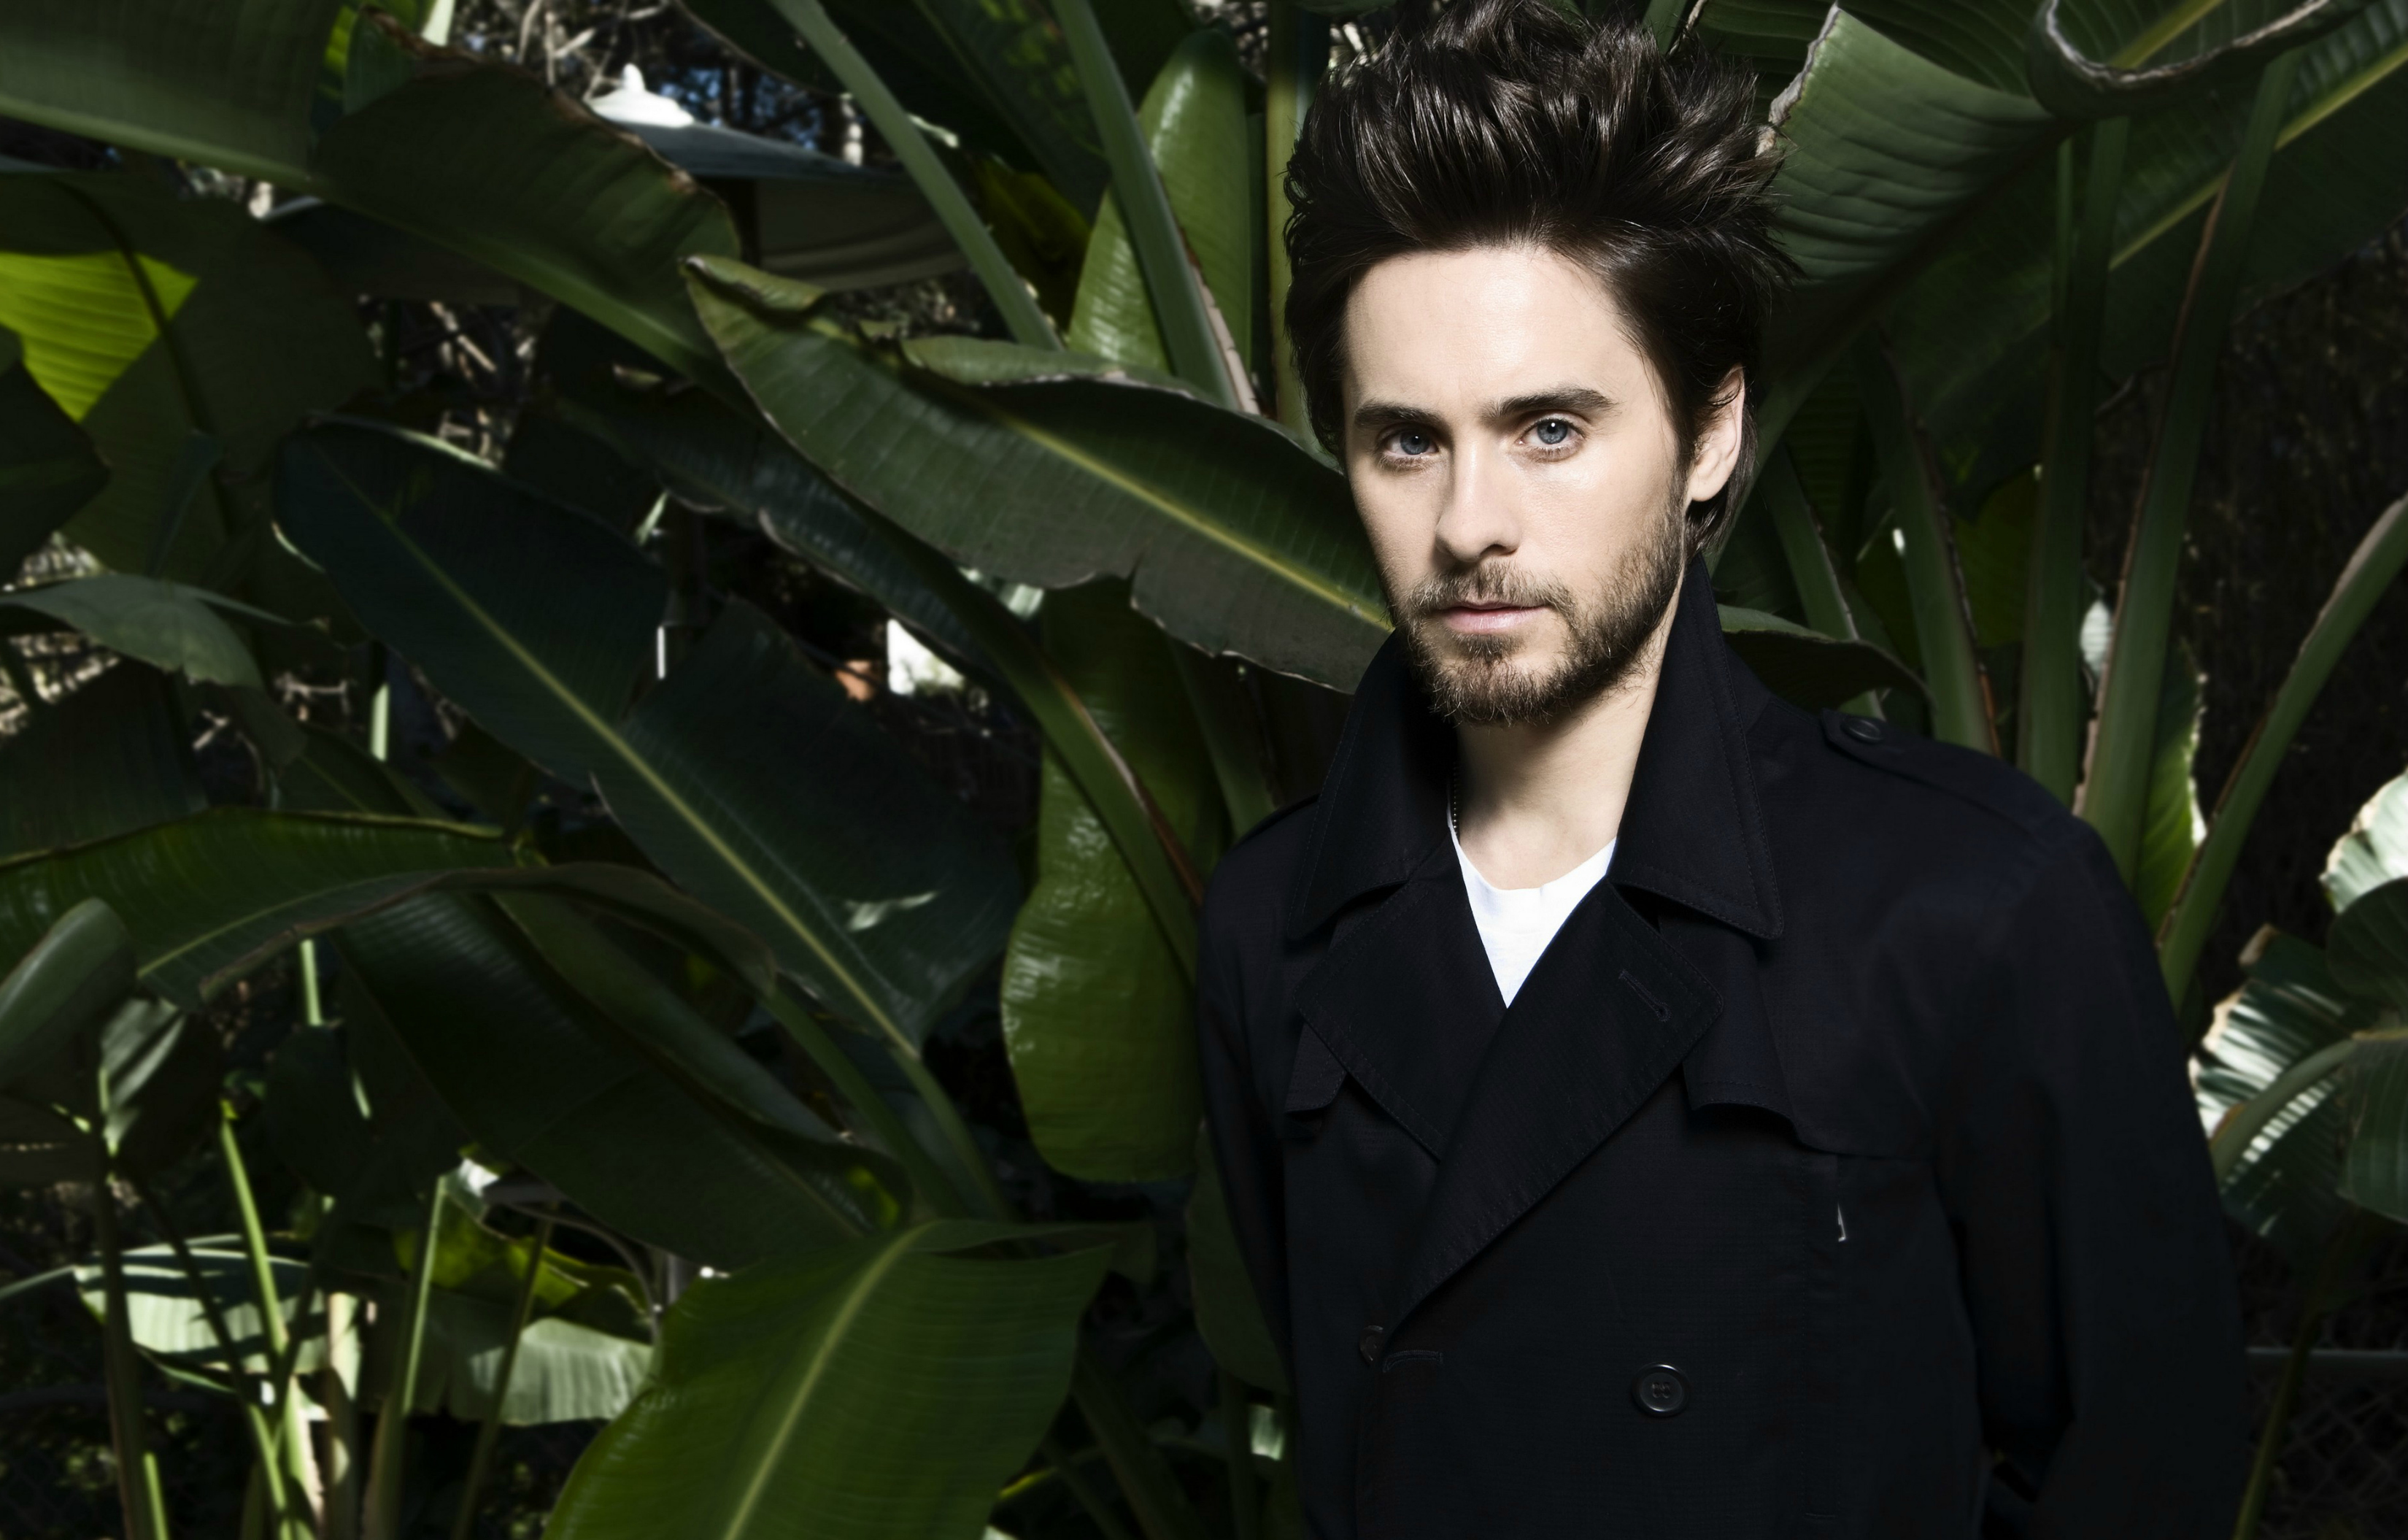 Jared leto images jared leto hd wallpaper and background photos - Jared Leto Images Jared Leto Hd Wallpaper And Background Photos 31